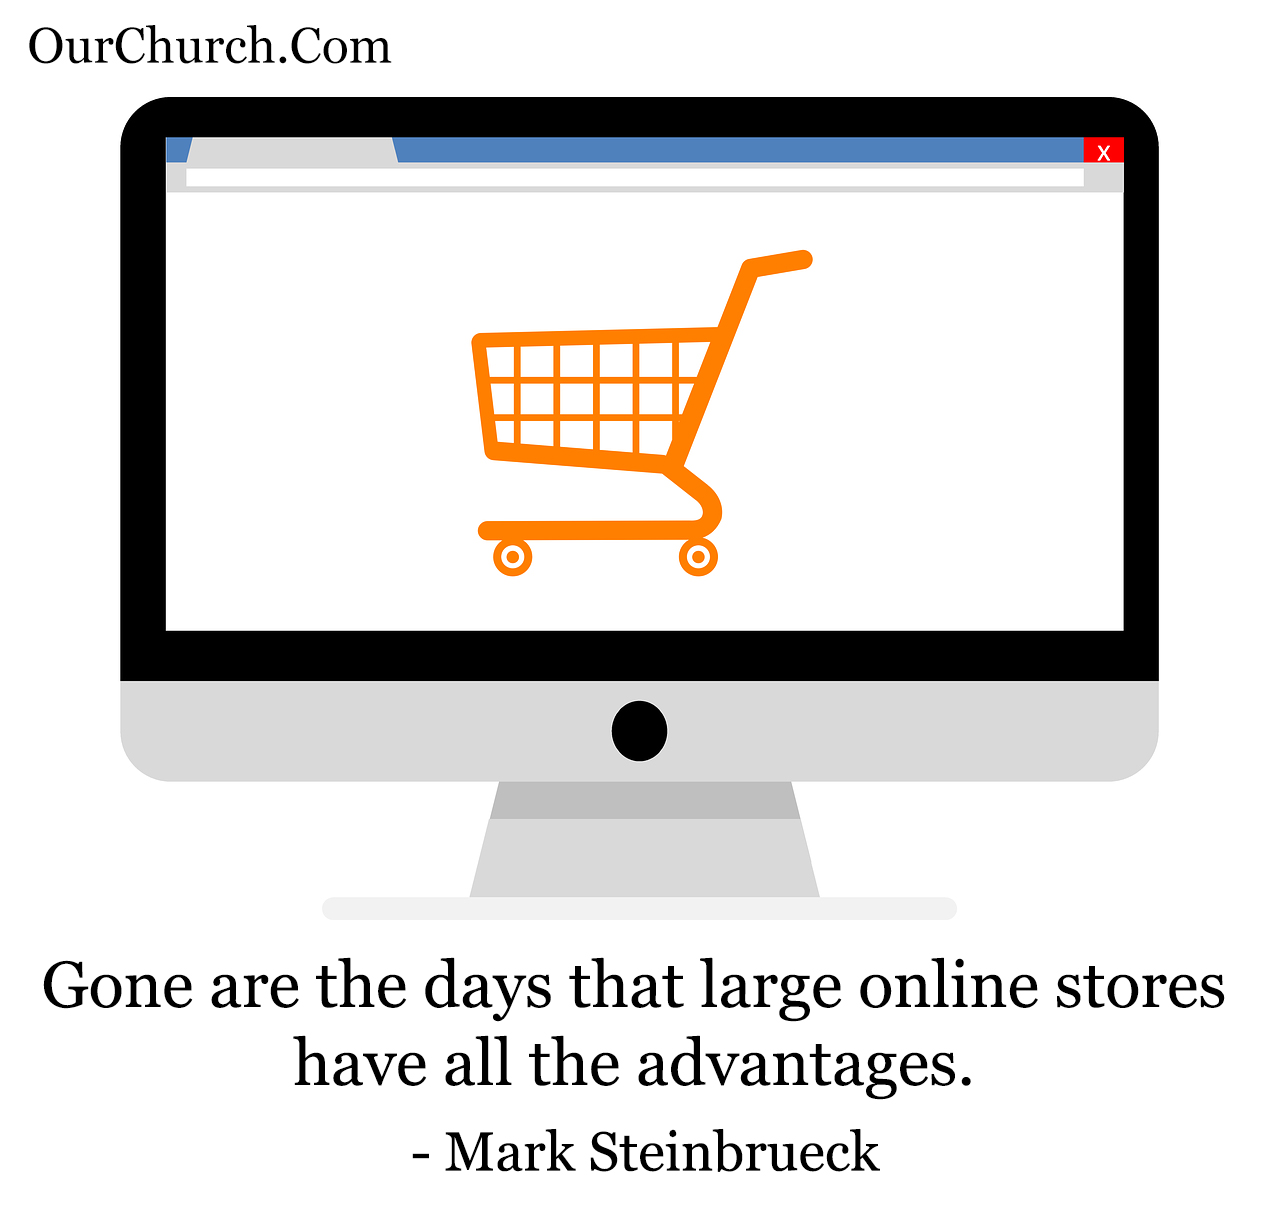 quote-ourchurch-gone-are-the-days-that